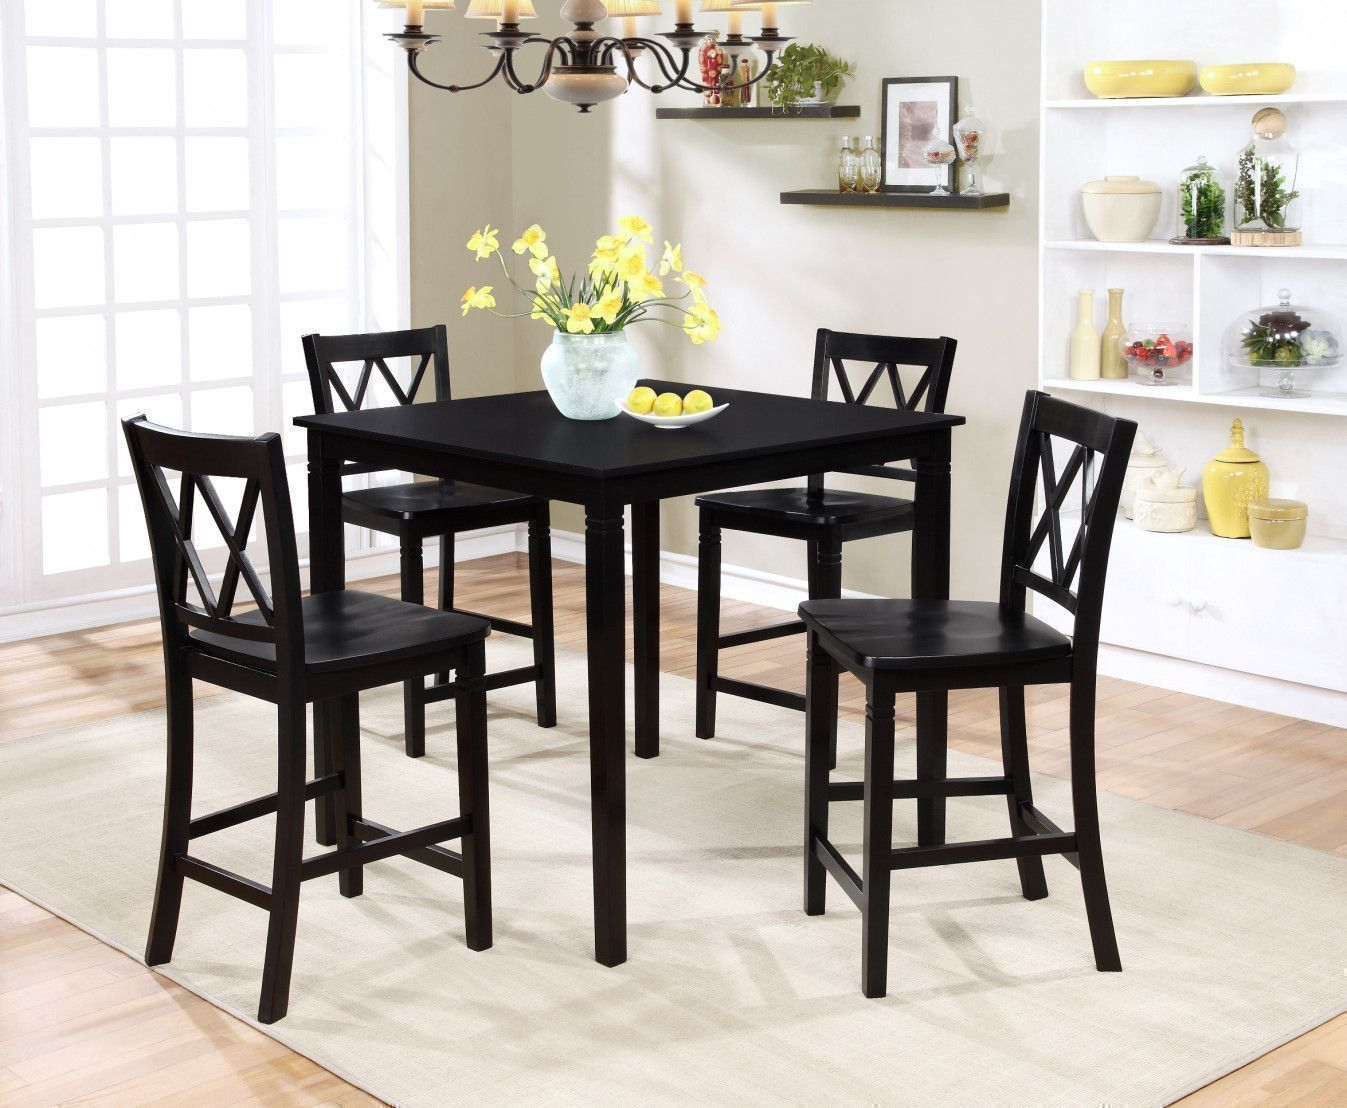 55 Kmart Dining Room Chairs  Luxury Modern Furniture Check More Interesting Kmart Kitchen Chairs Design Inspiration